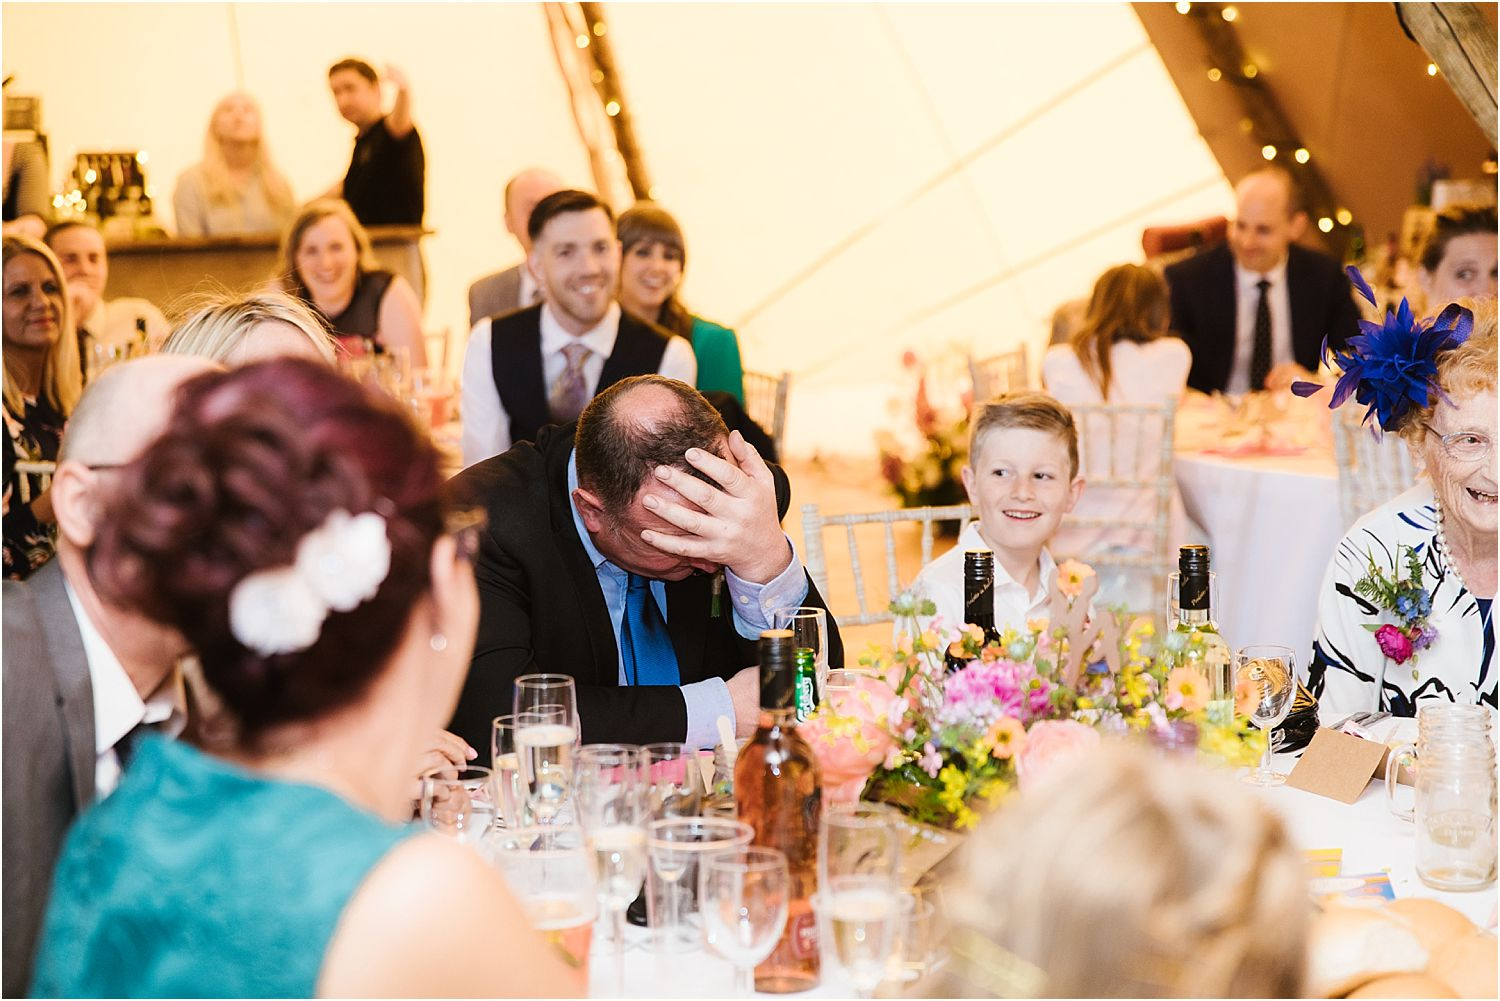 Embarrassed guest at Lancashire farm wedding reception